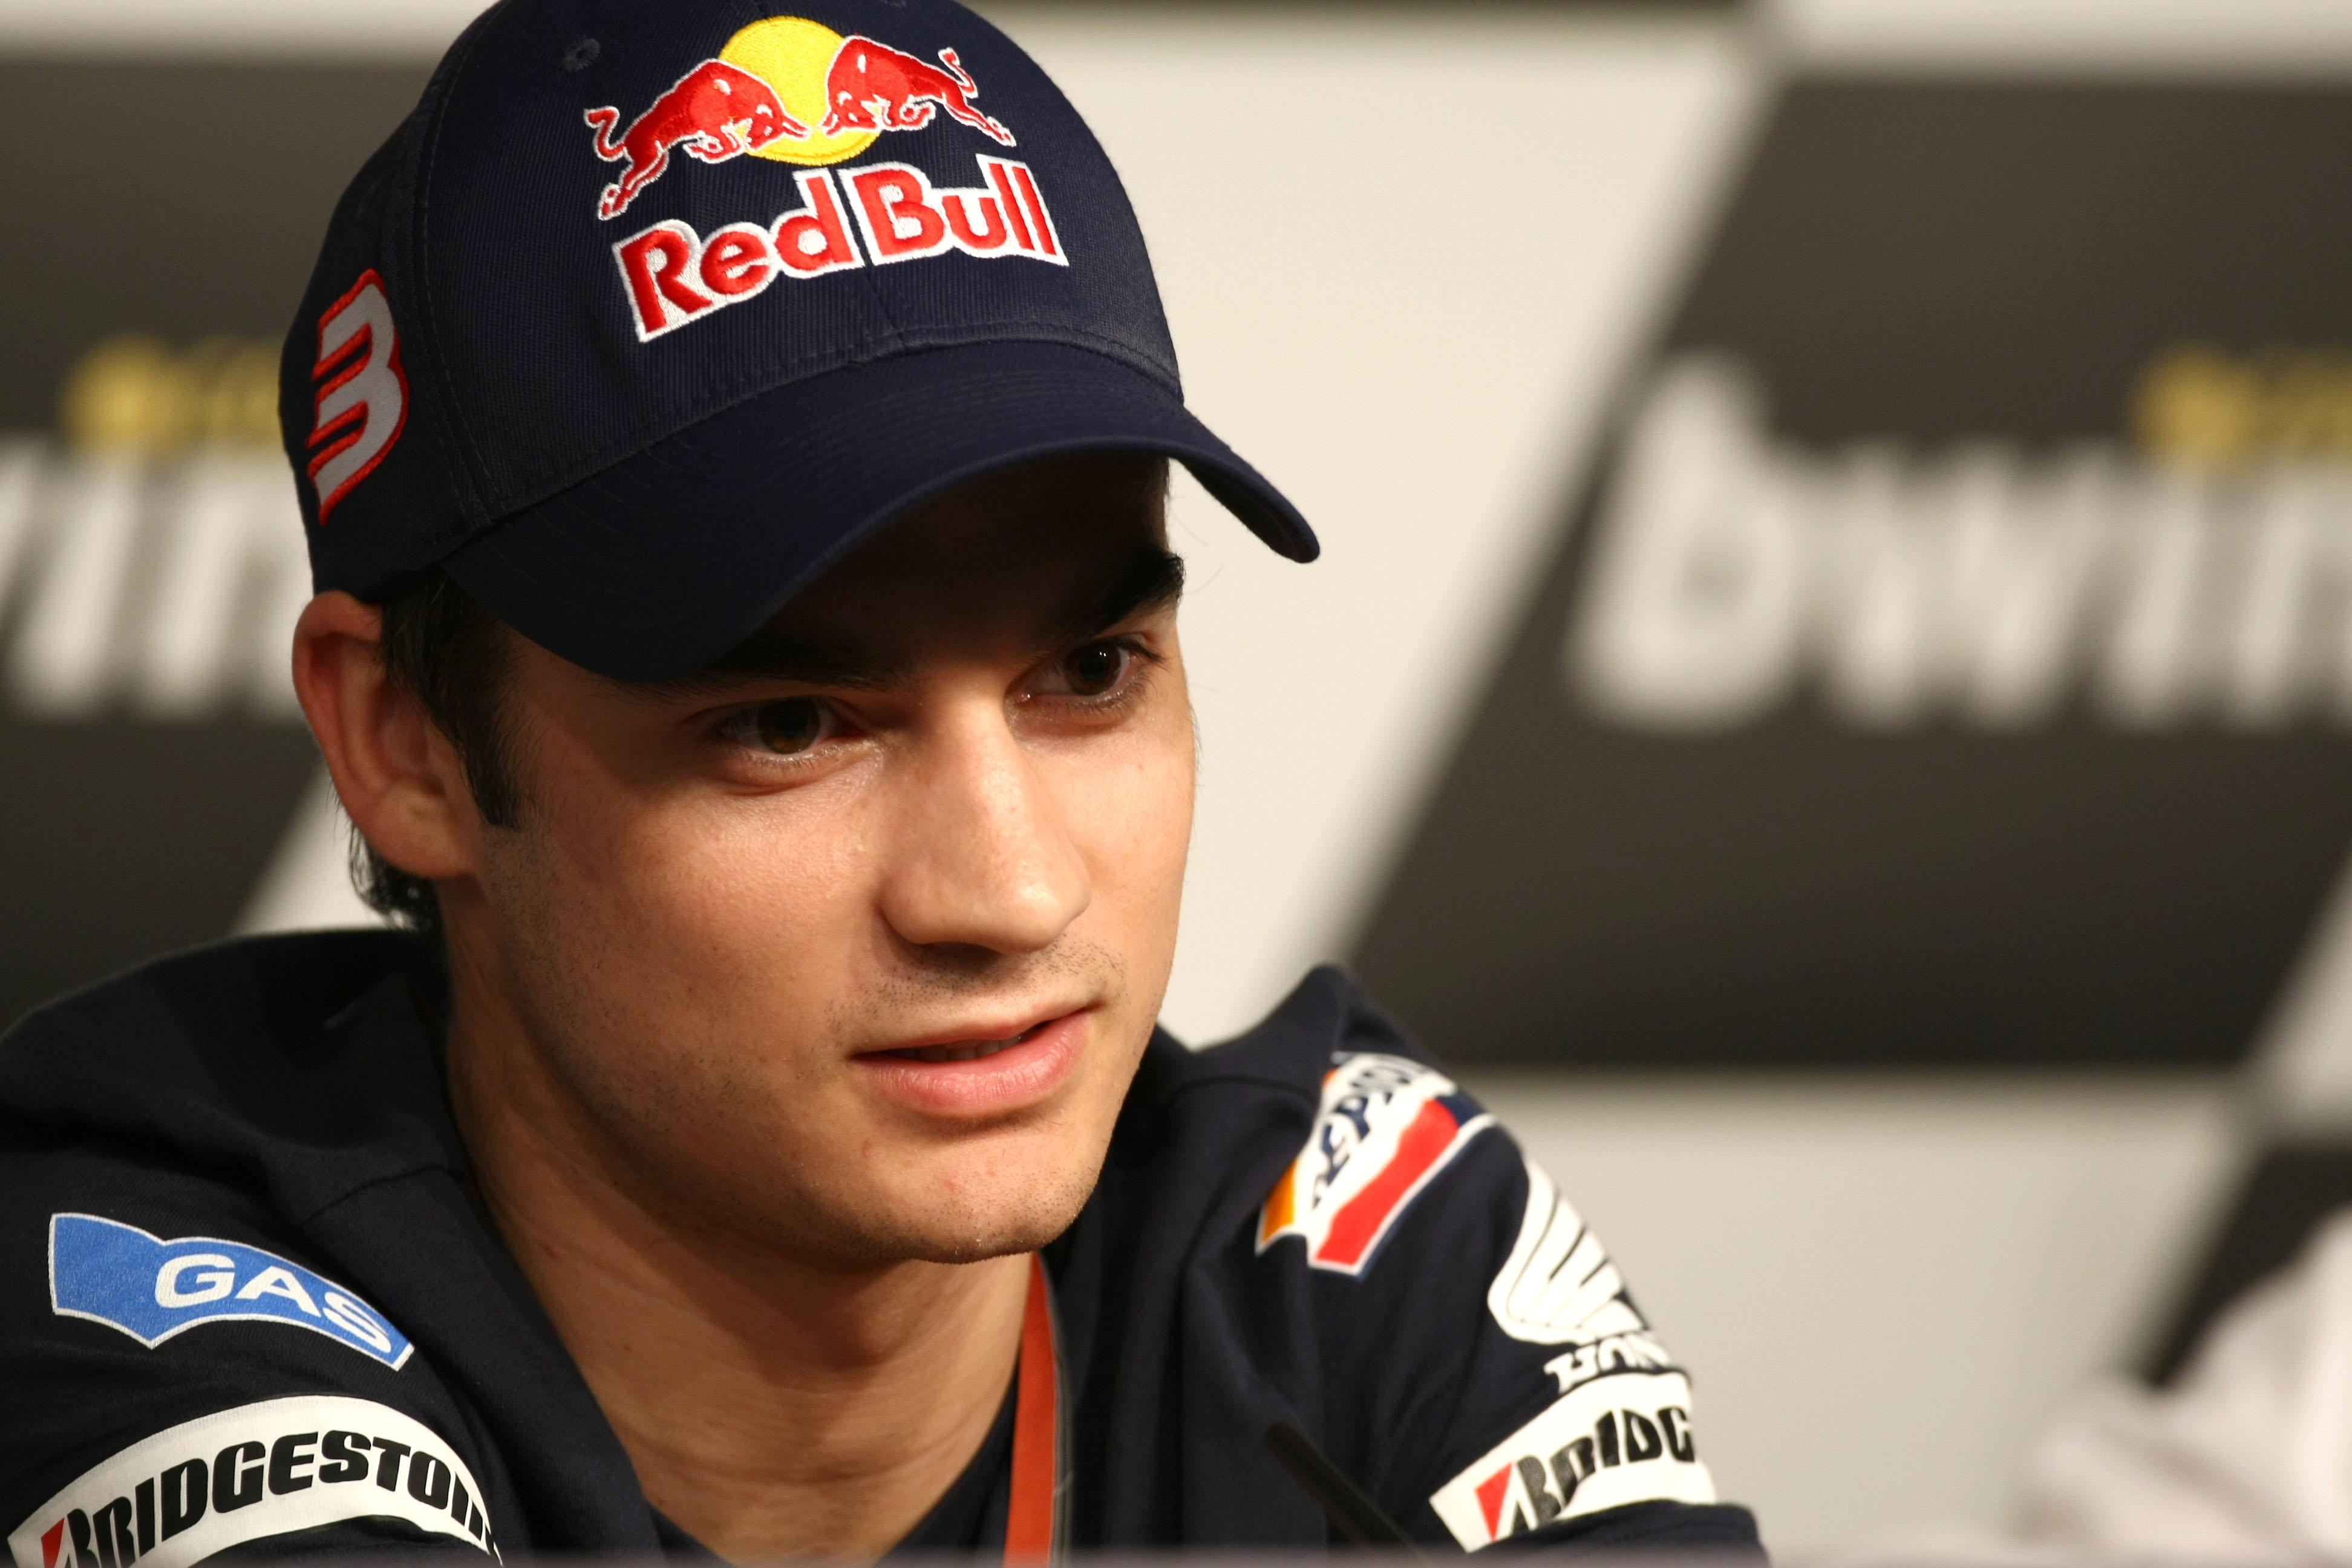 This year or never for Pedrosa